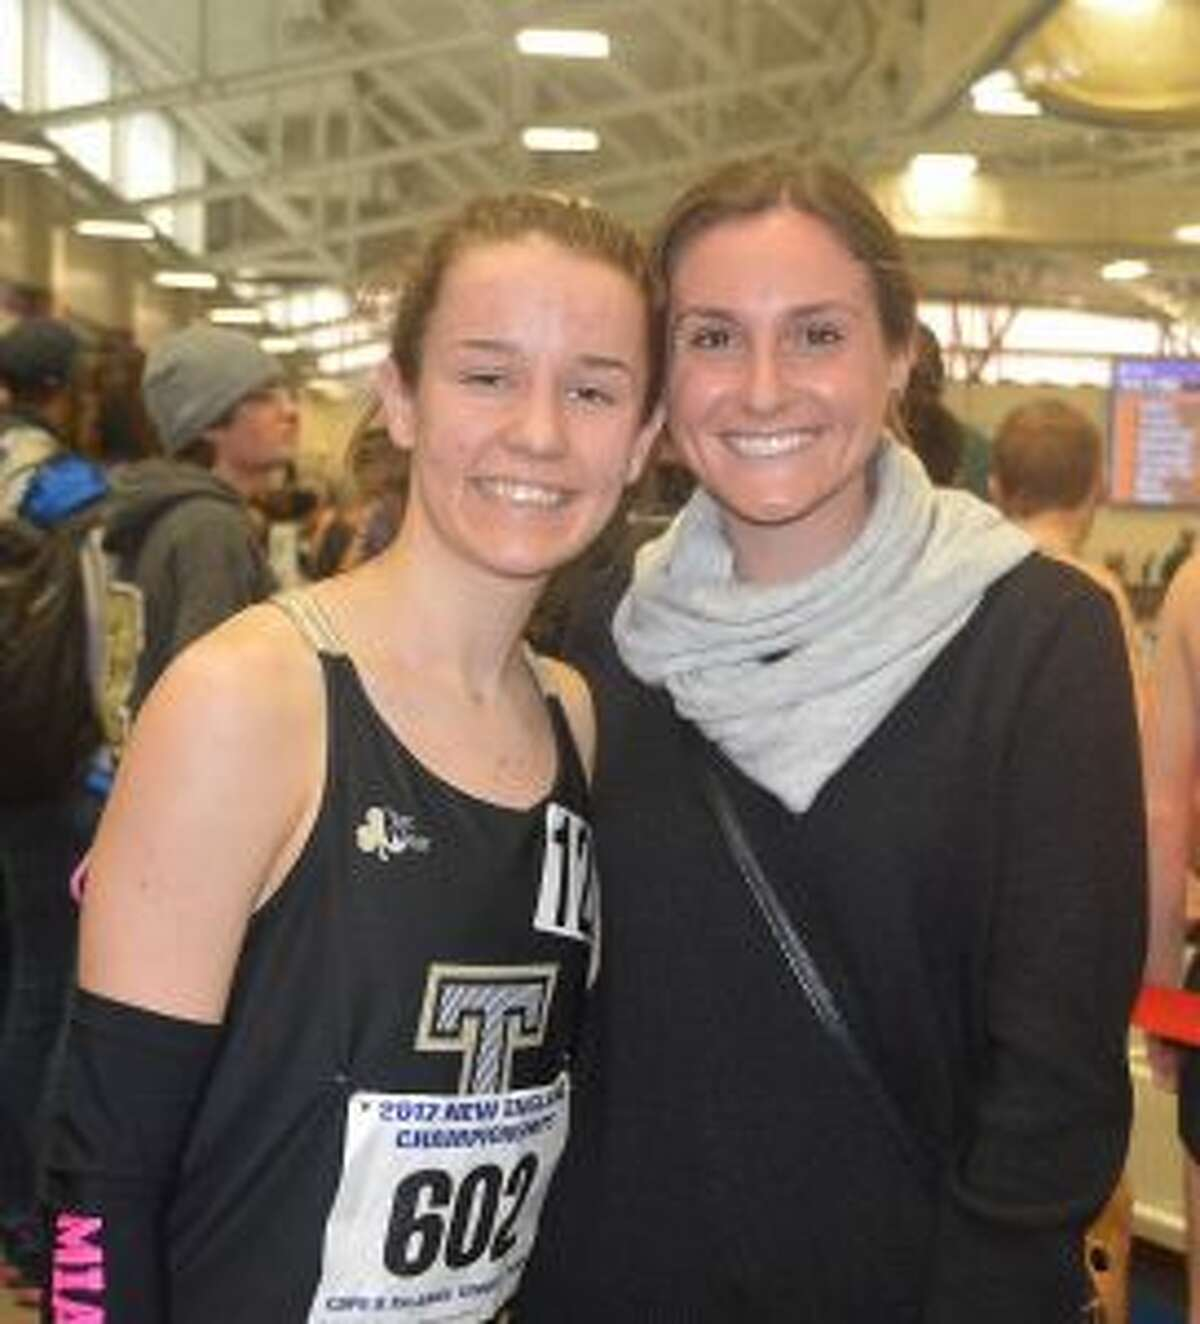 Kate Romanchick is congratulated by previous record holder Danielle Klein after setting a school record in the 3200 at the New England Championships.